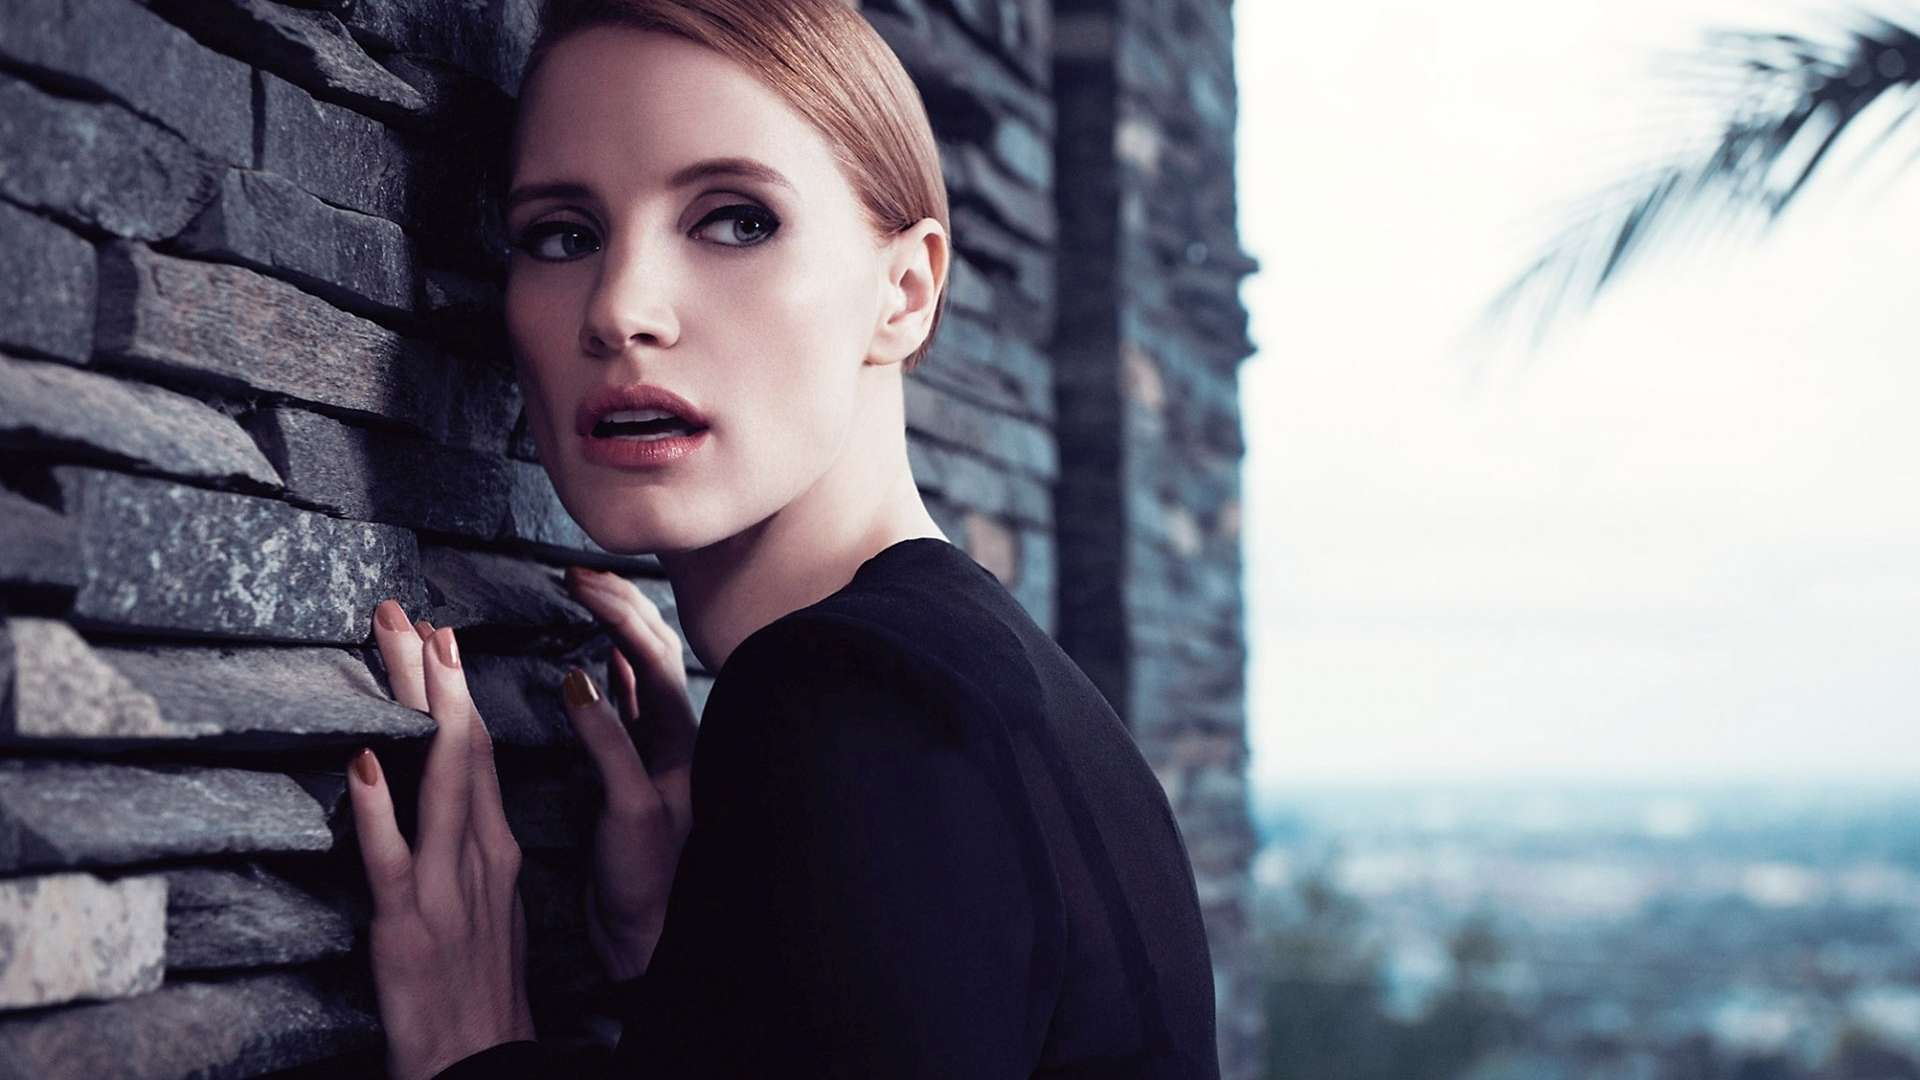 1920x1080 - Jessica Chastain Wallpapers 17